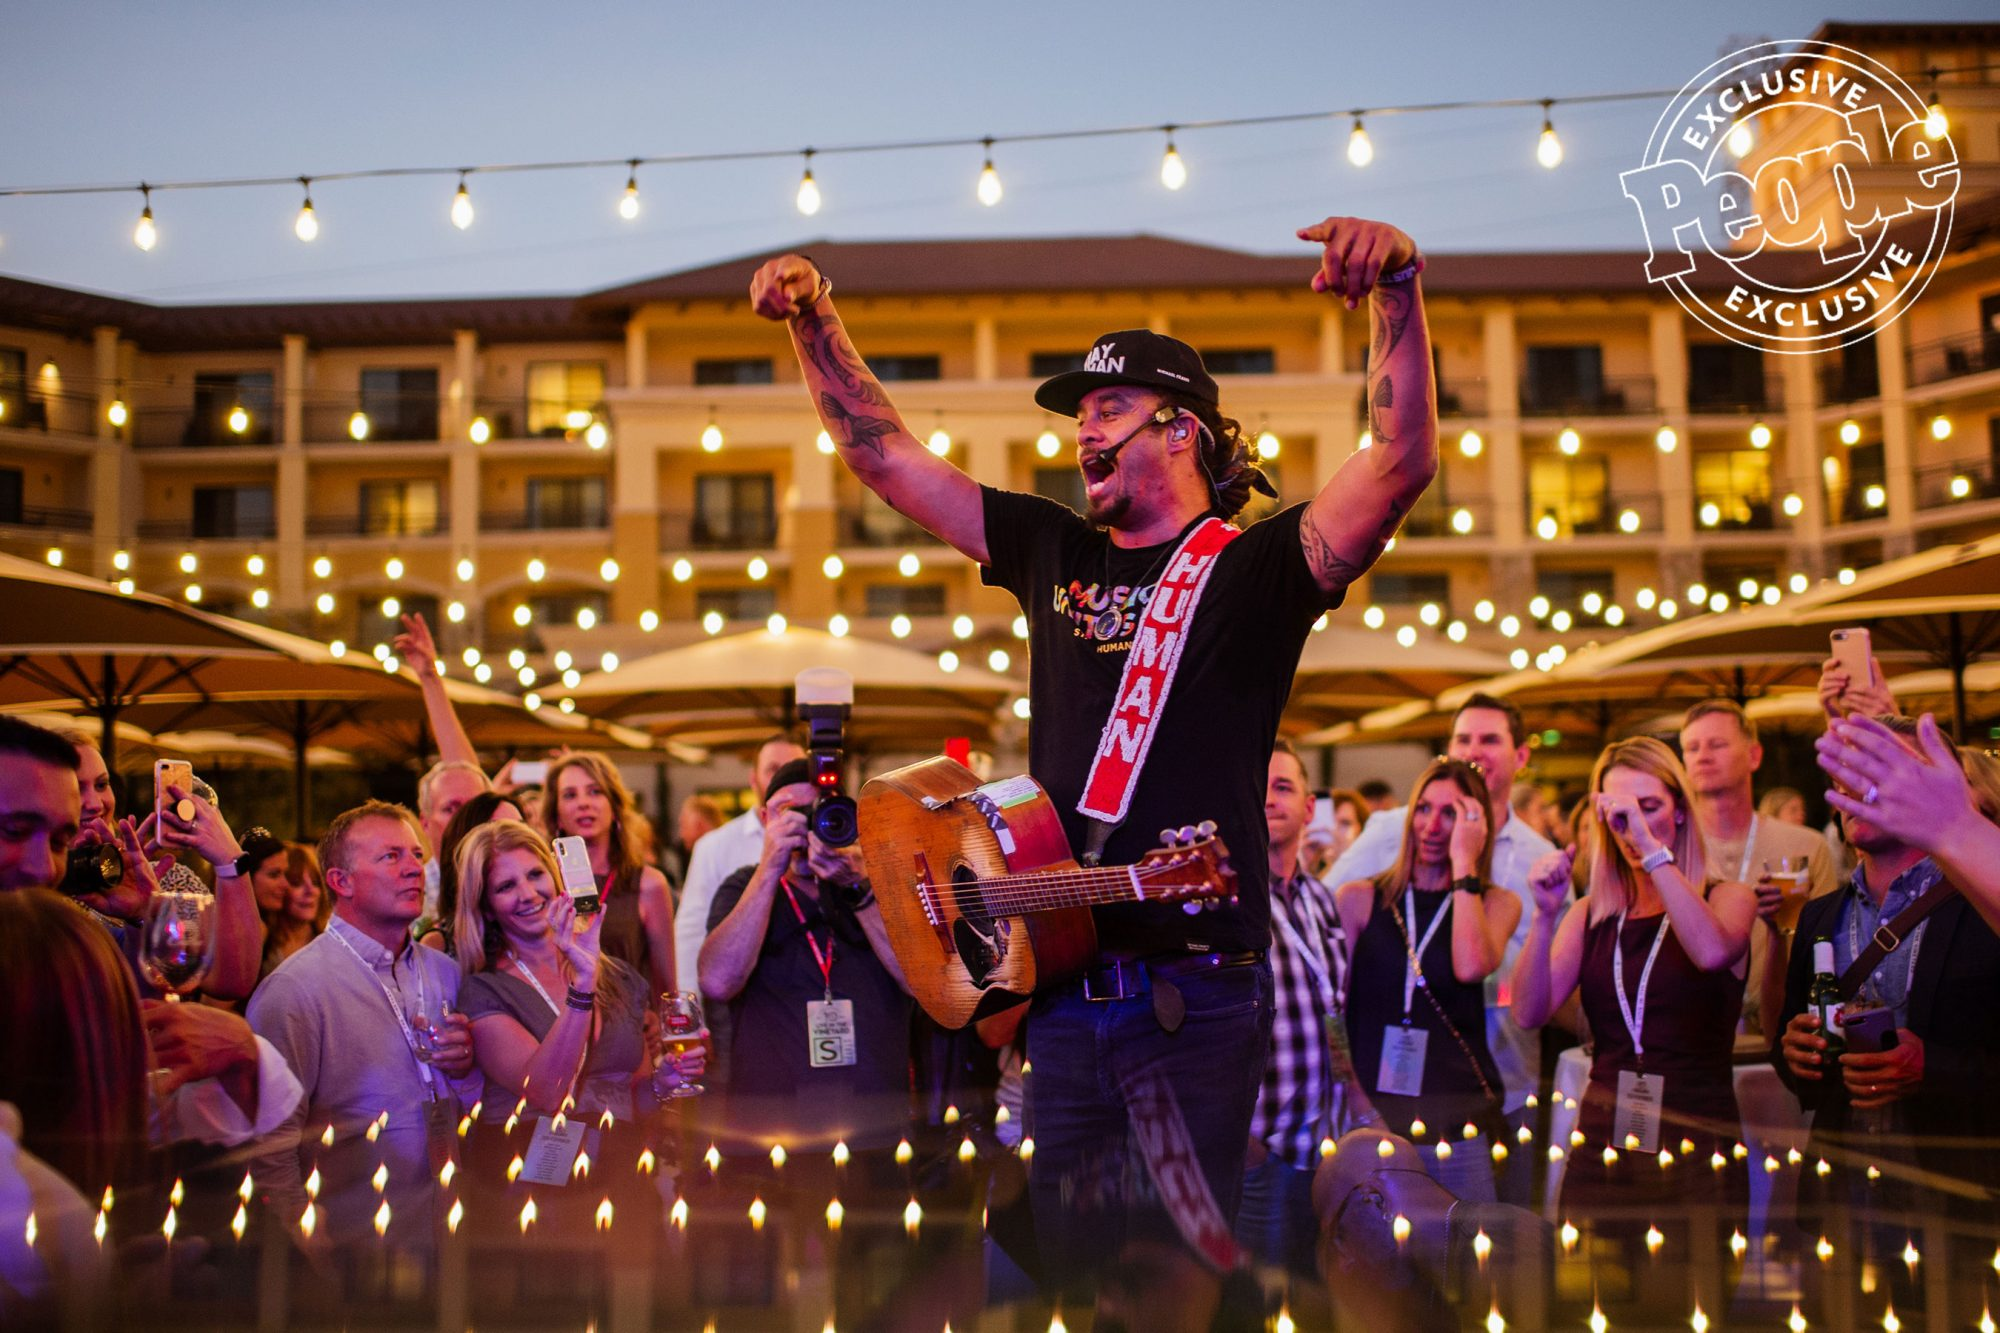 Michael-Franti-performs-for-guests-at-LITV-during-the-Opening-Reception-at-Vista-Collina